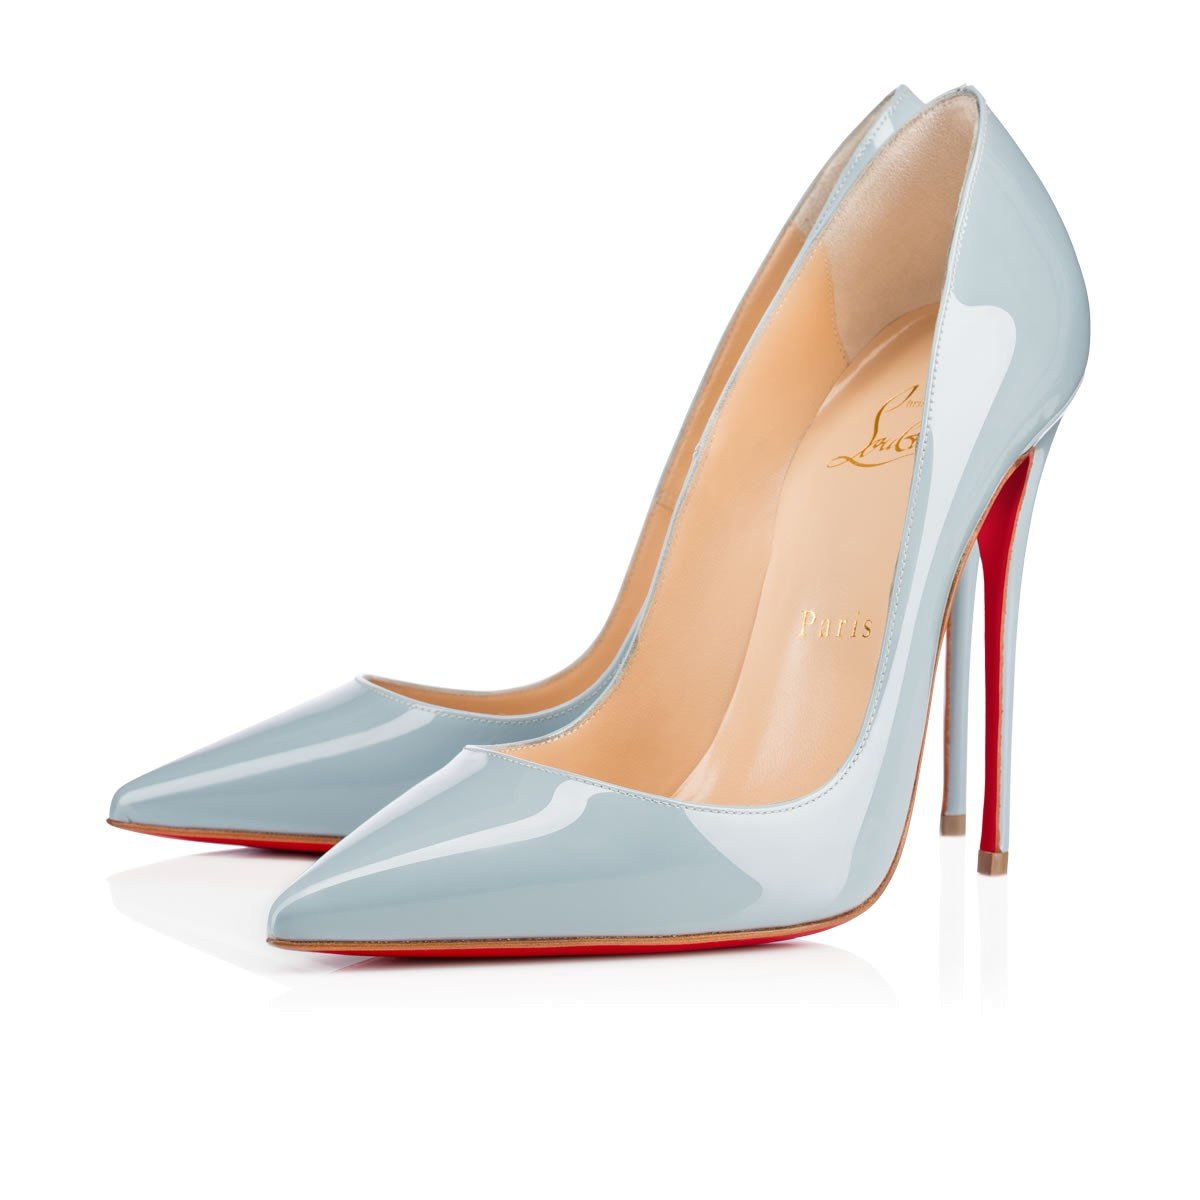 Image of Christian Louboutin New pointed high heels   3.13